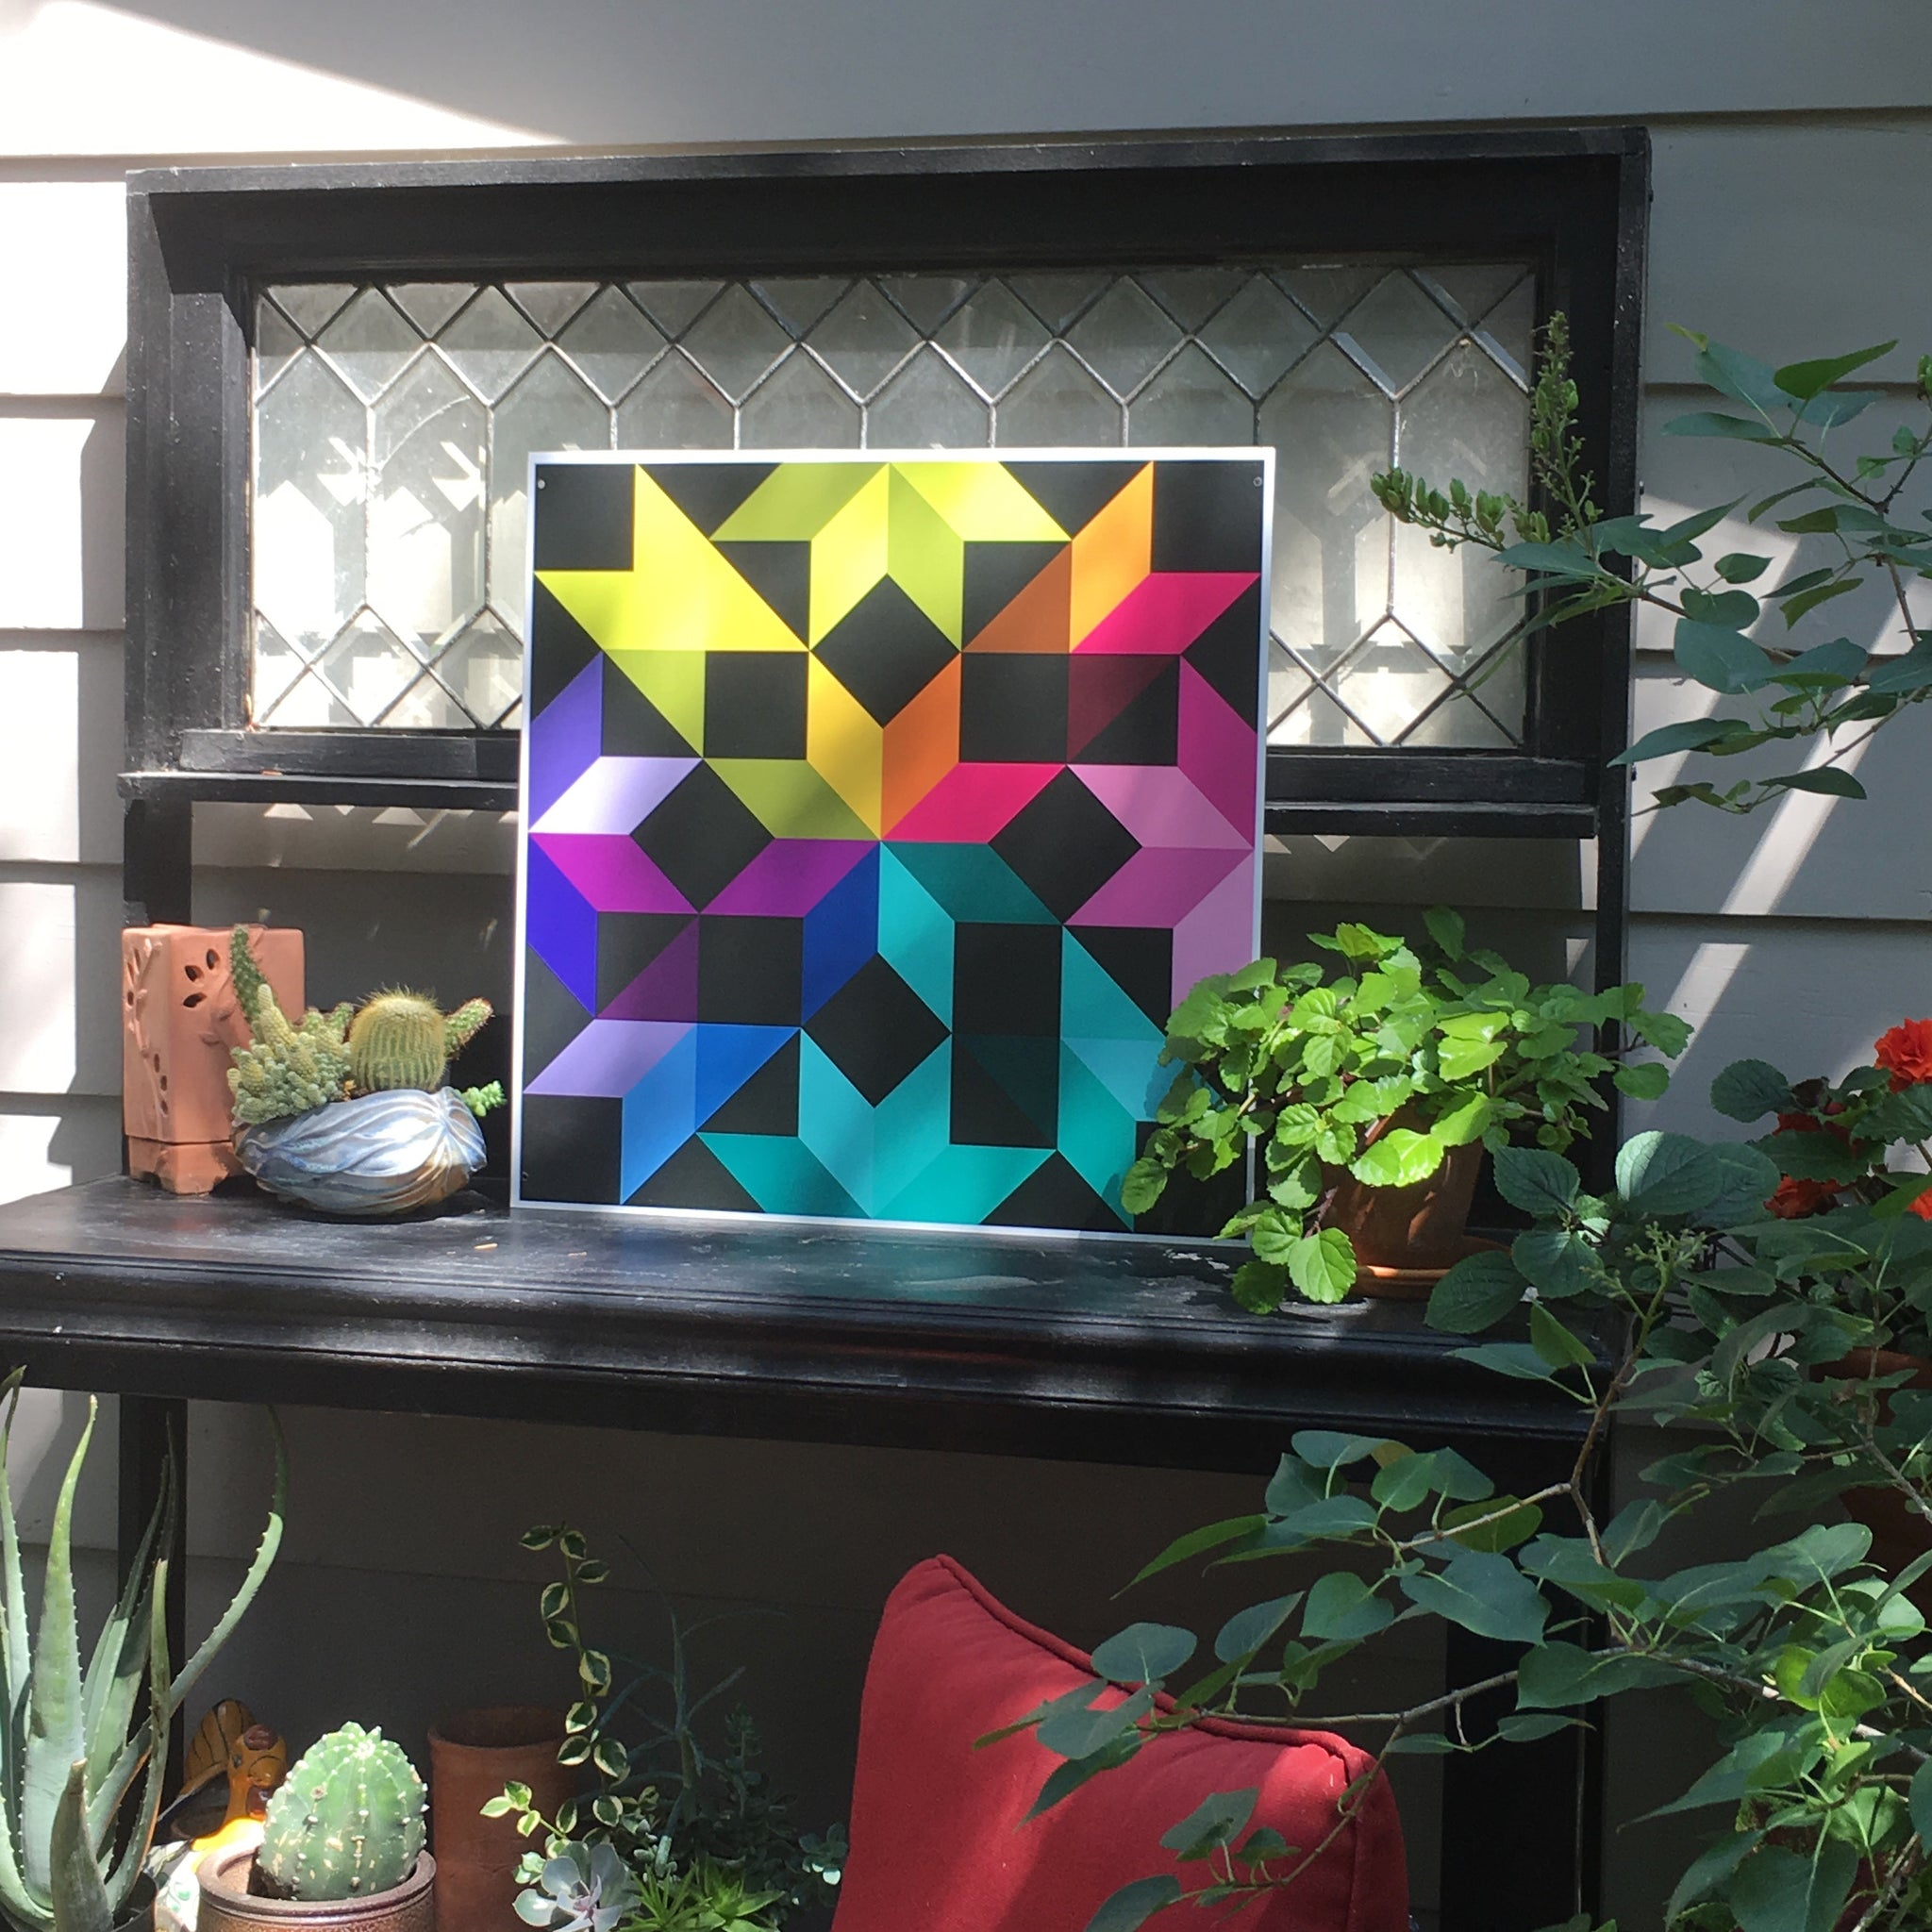 Northern Lights Backyard Barn Quilt - Quilt Designs in the Yard